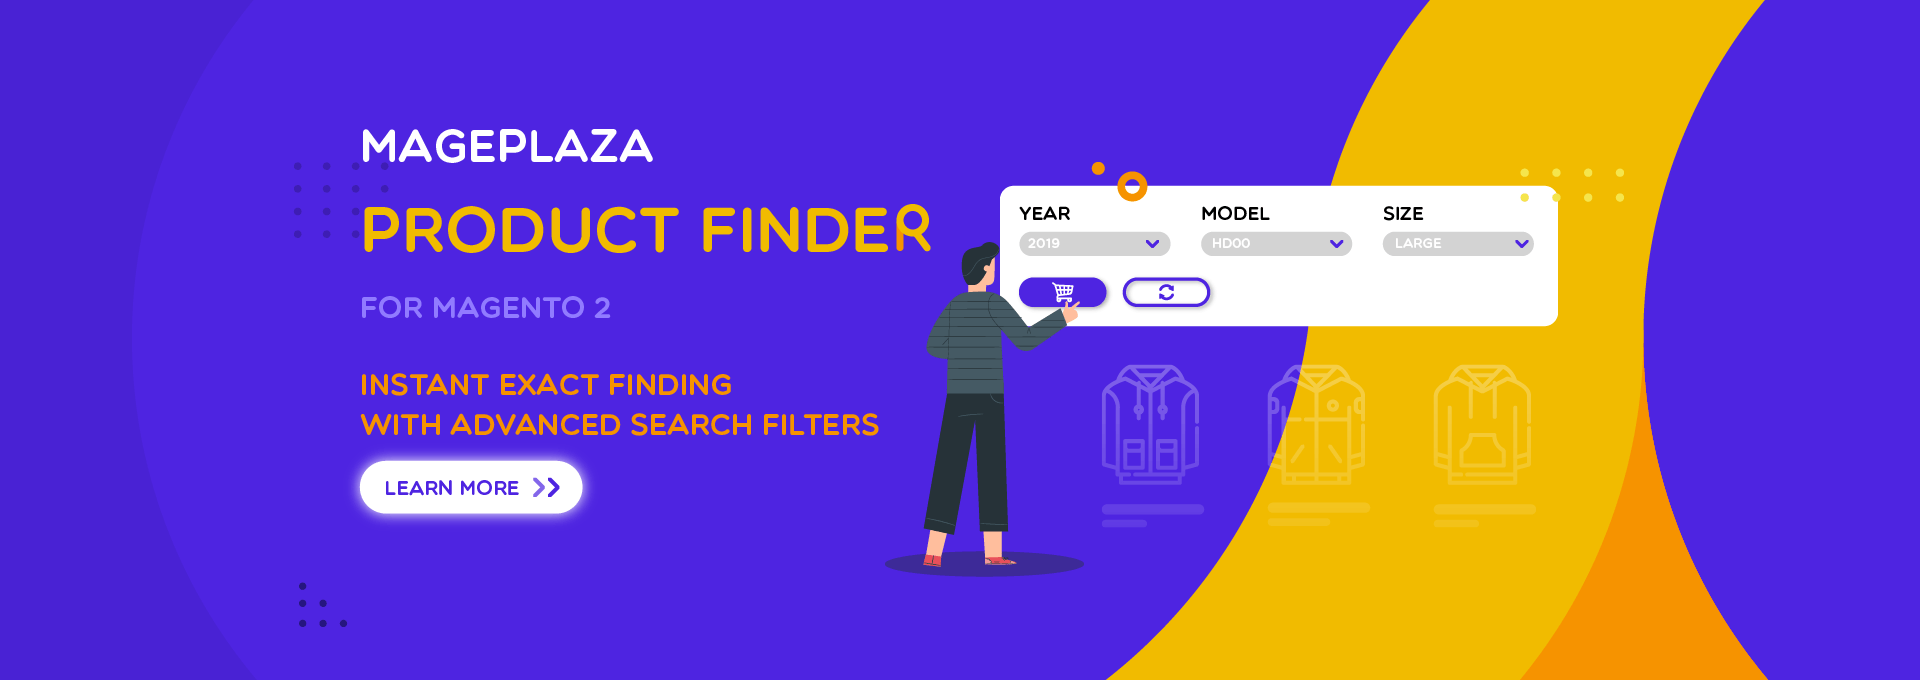 How to equip advanced search options for Magento 2 by Product Finder